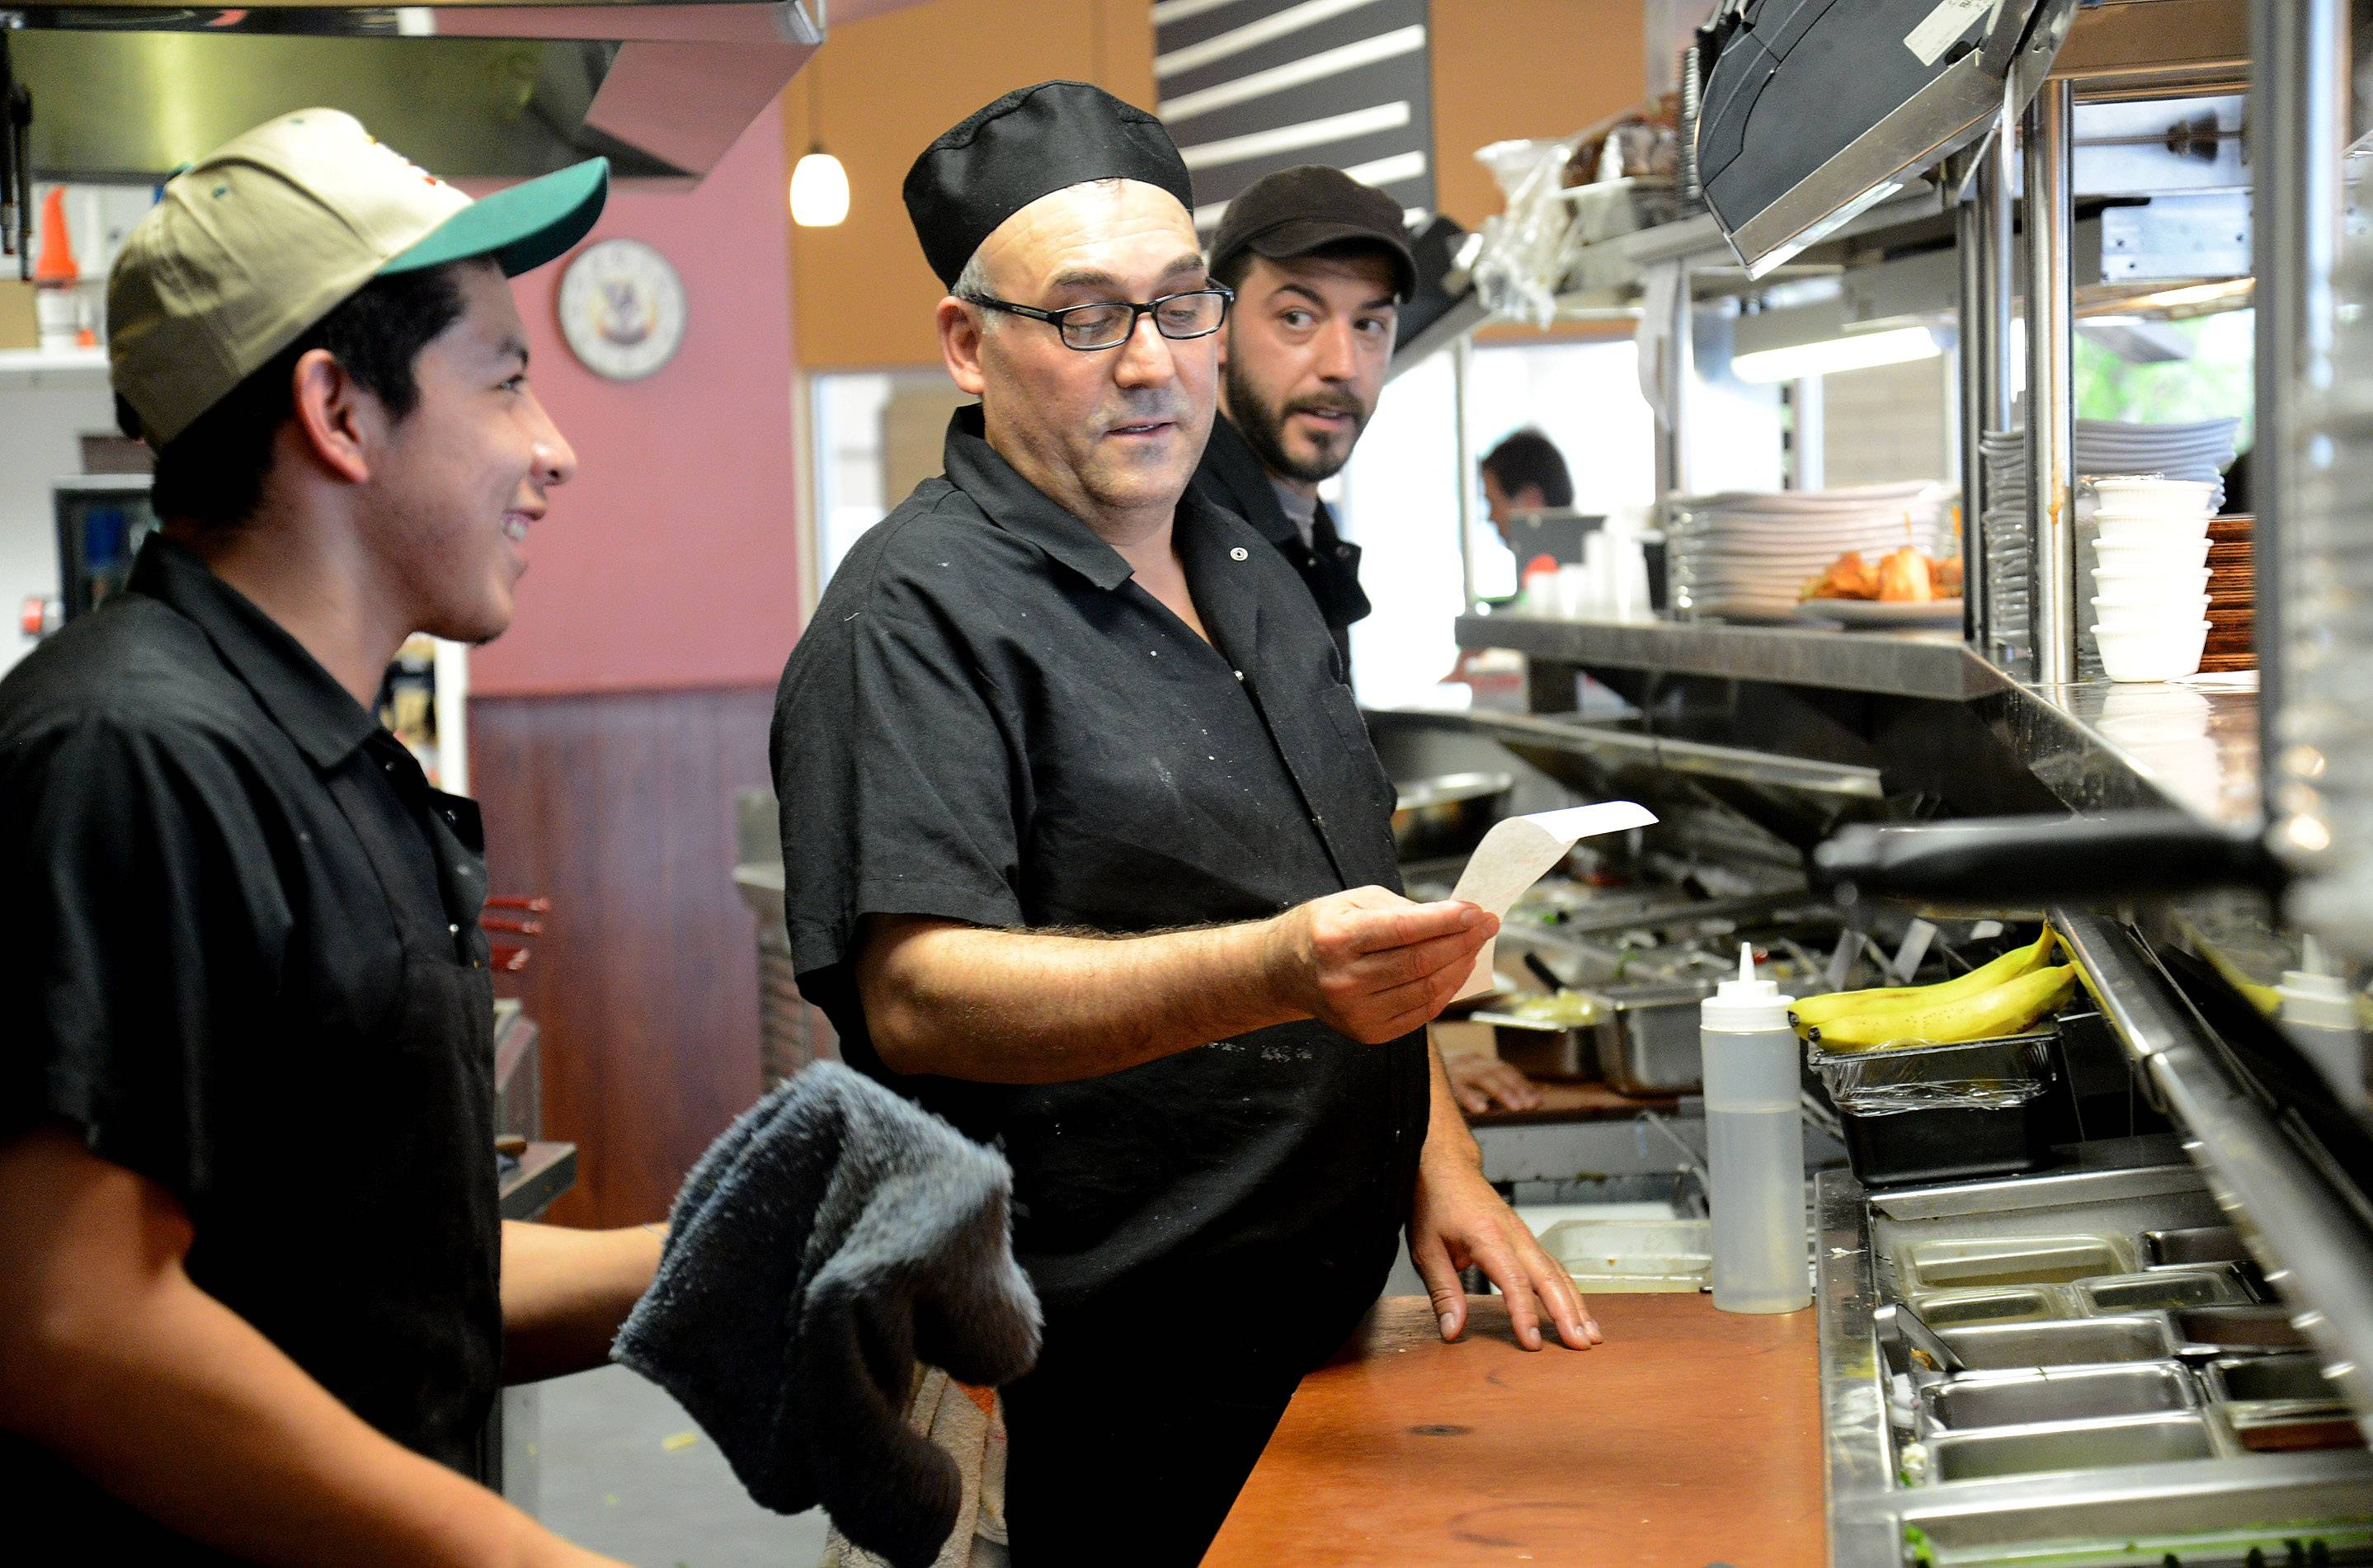 Daniel Morales, left, George Pouras and chef Kostas Anyfantis dish up breakfast and lunch at Maple Cafe in Buffalo Grove.